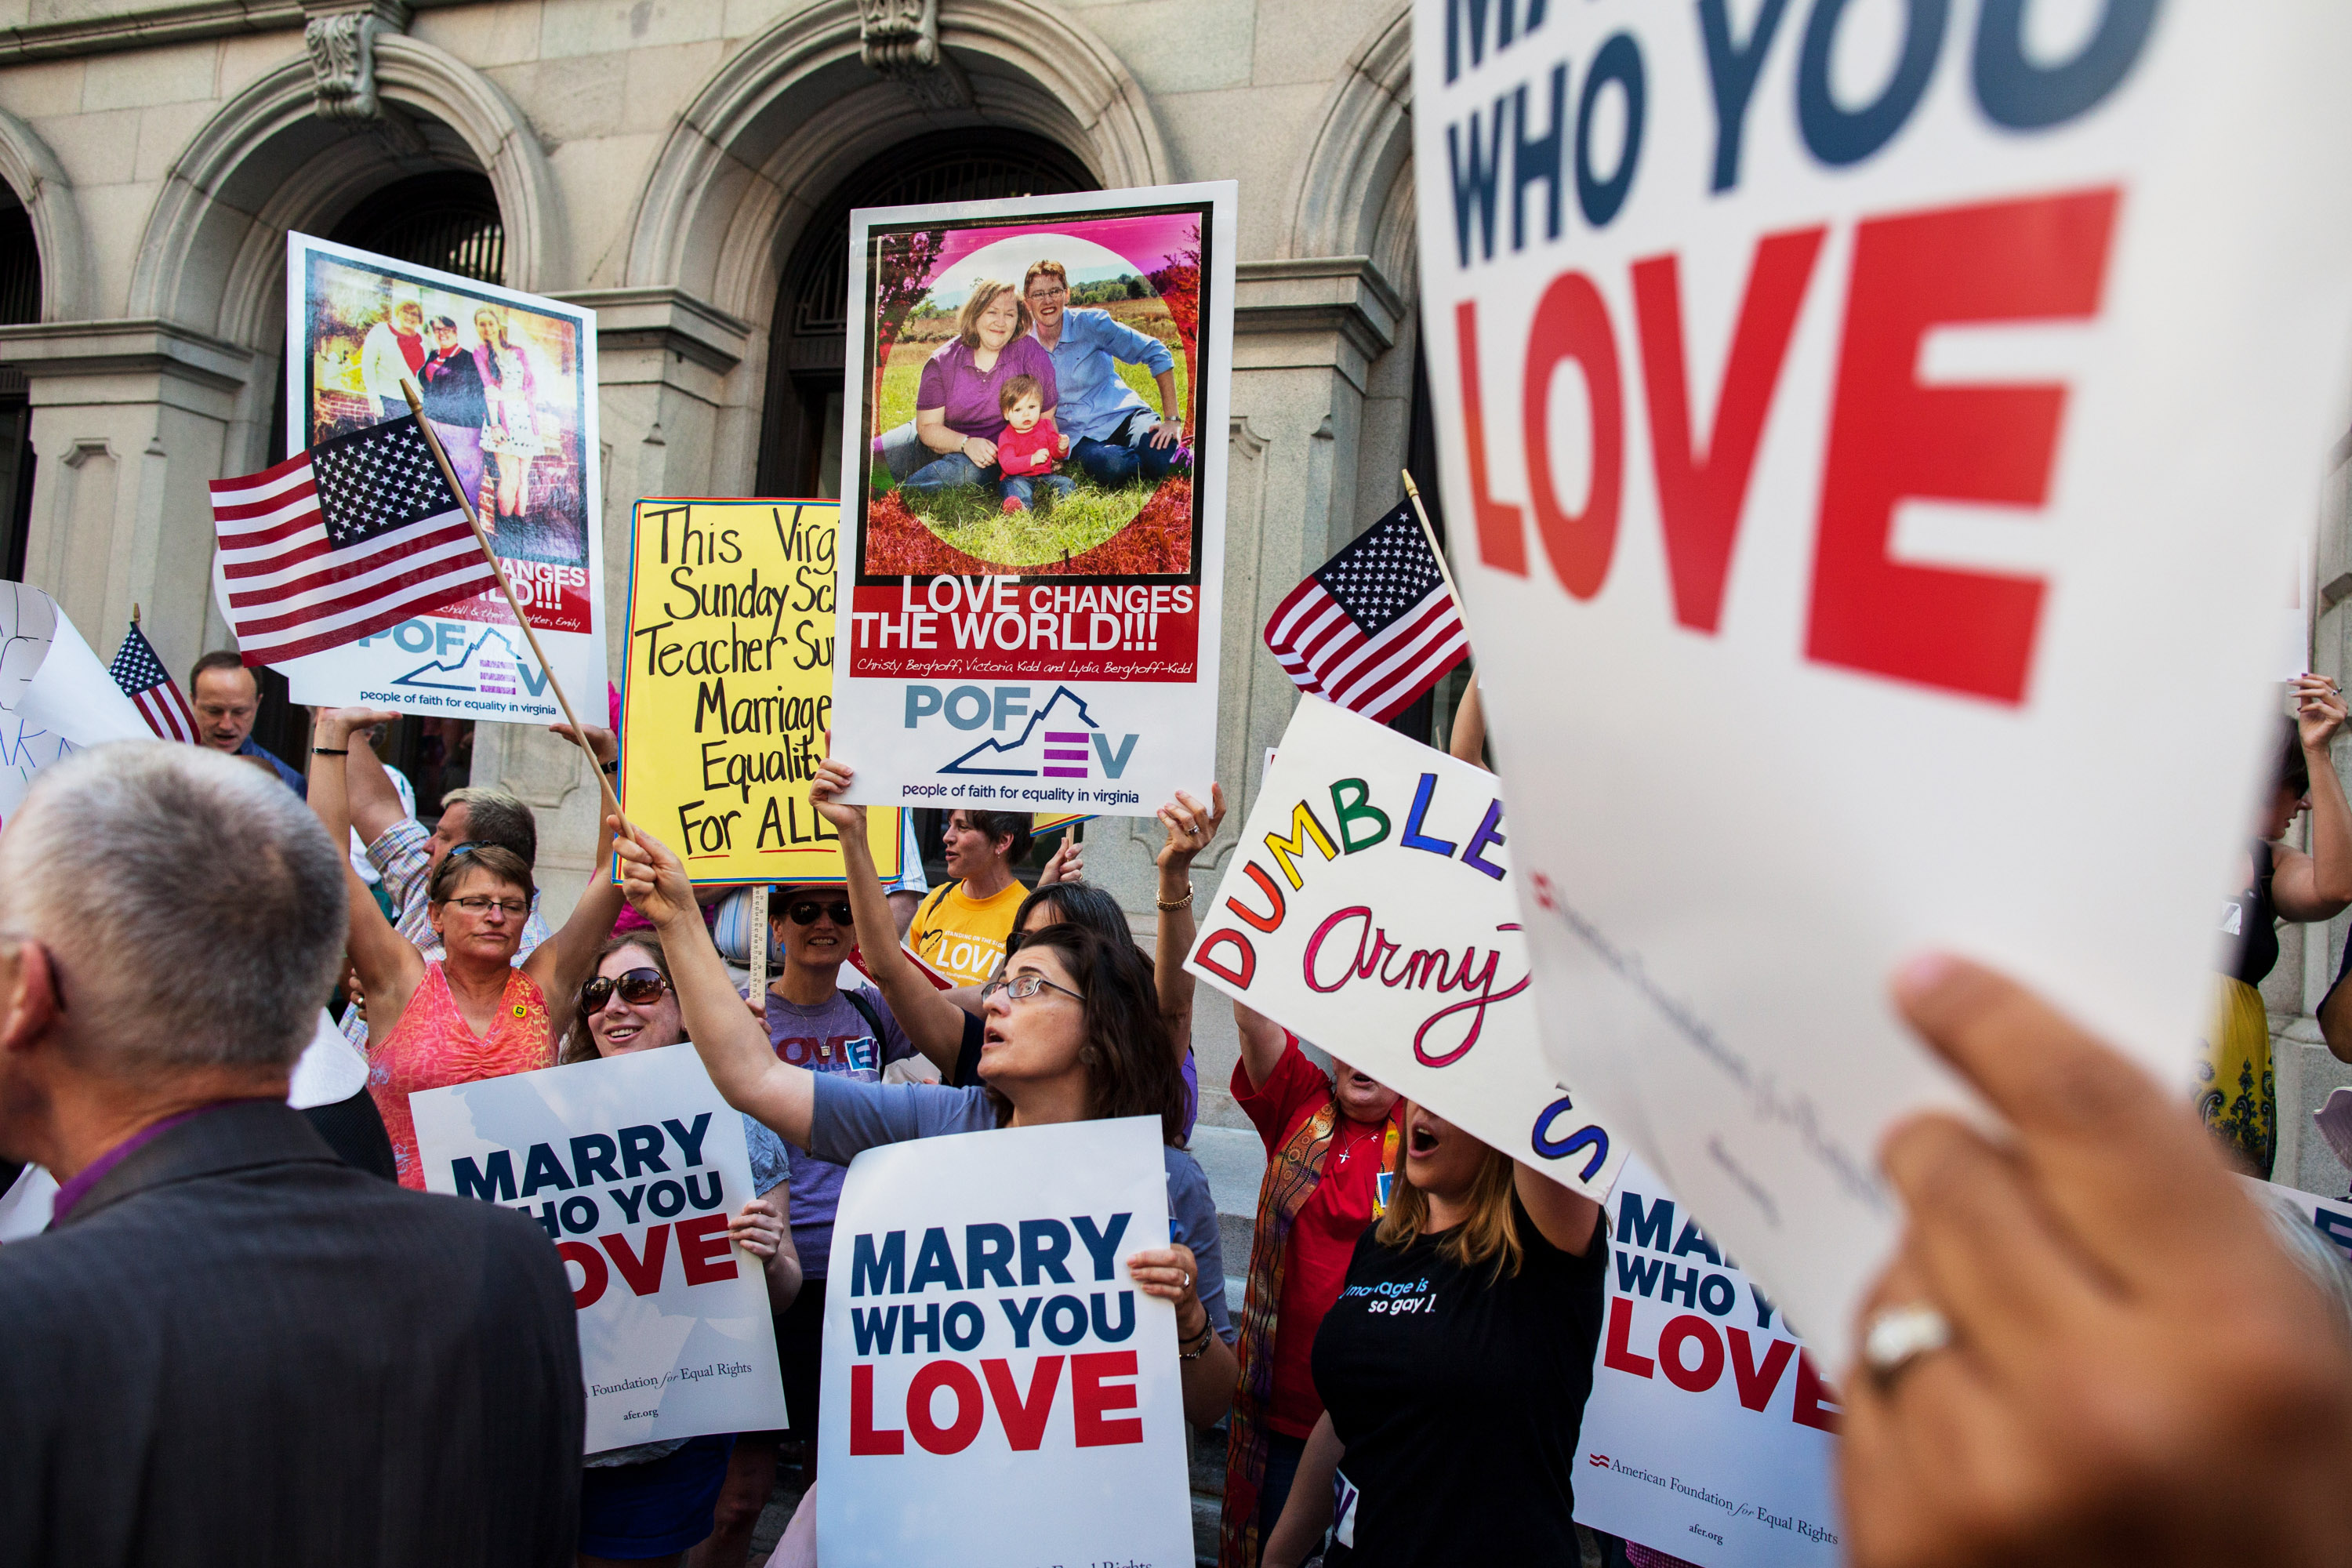 Rights denied to same sex couples